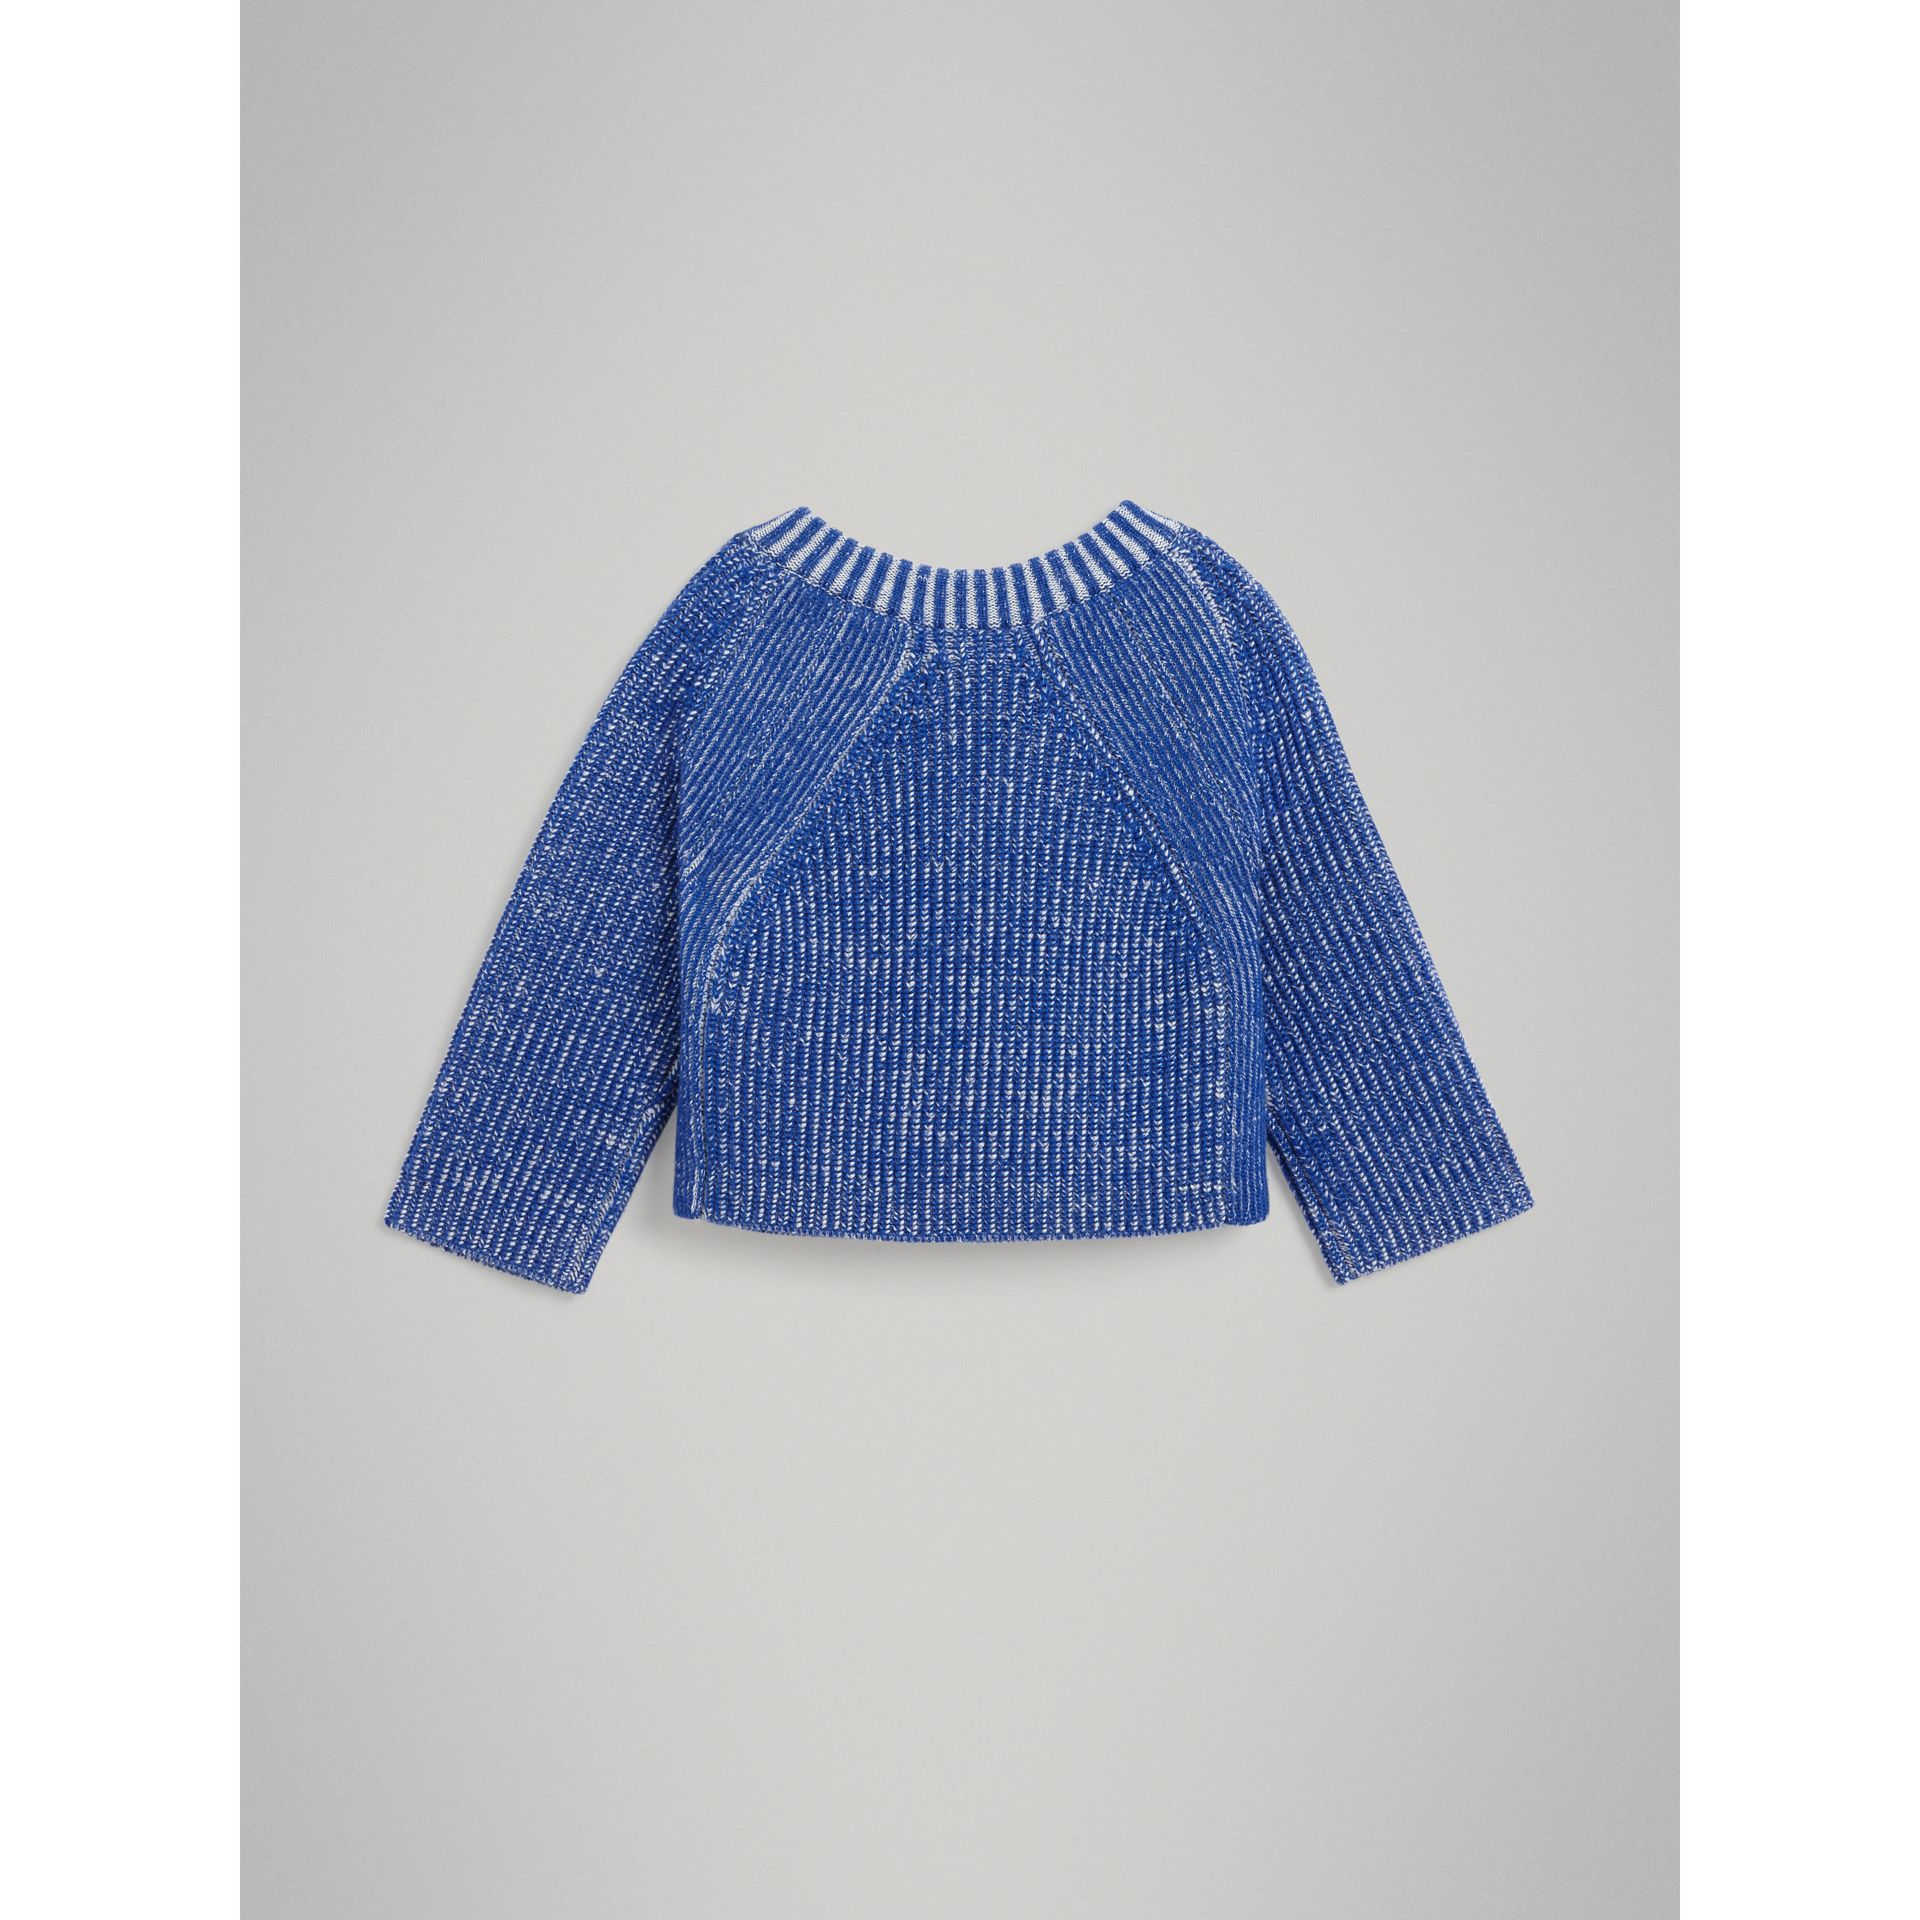 Rib Knit Merino Wool Sweater in Cerulean Blue - Children | Burberry - gallery image 3